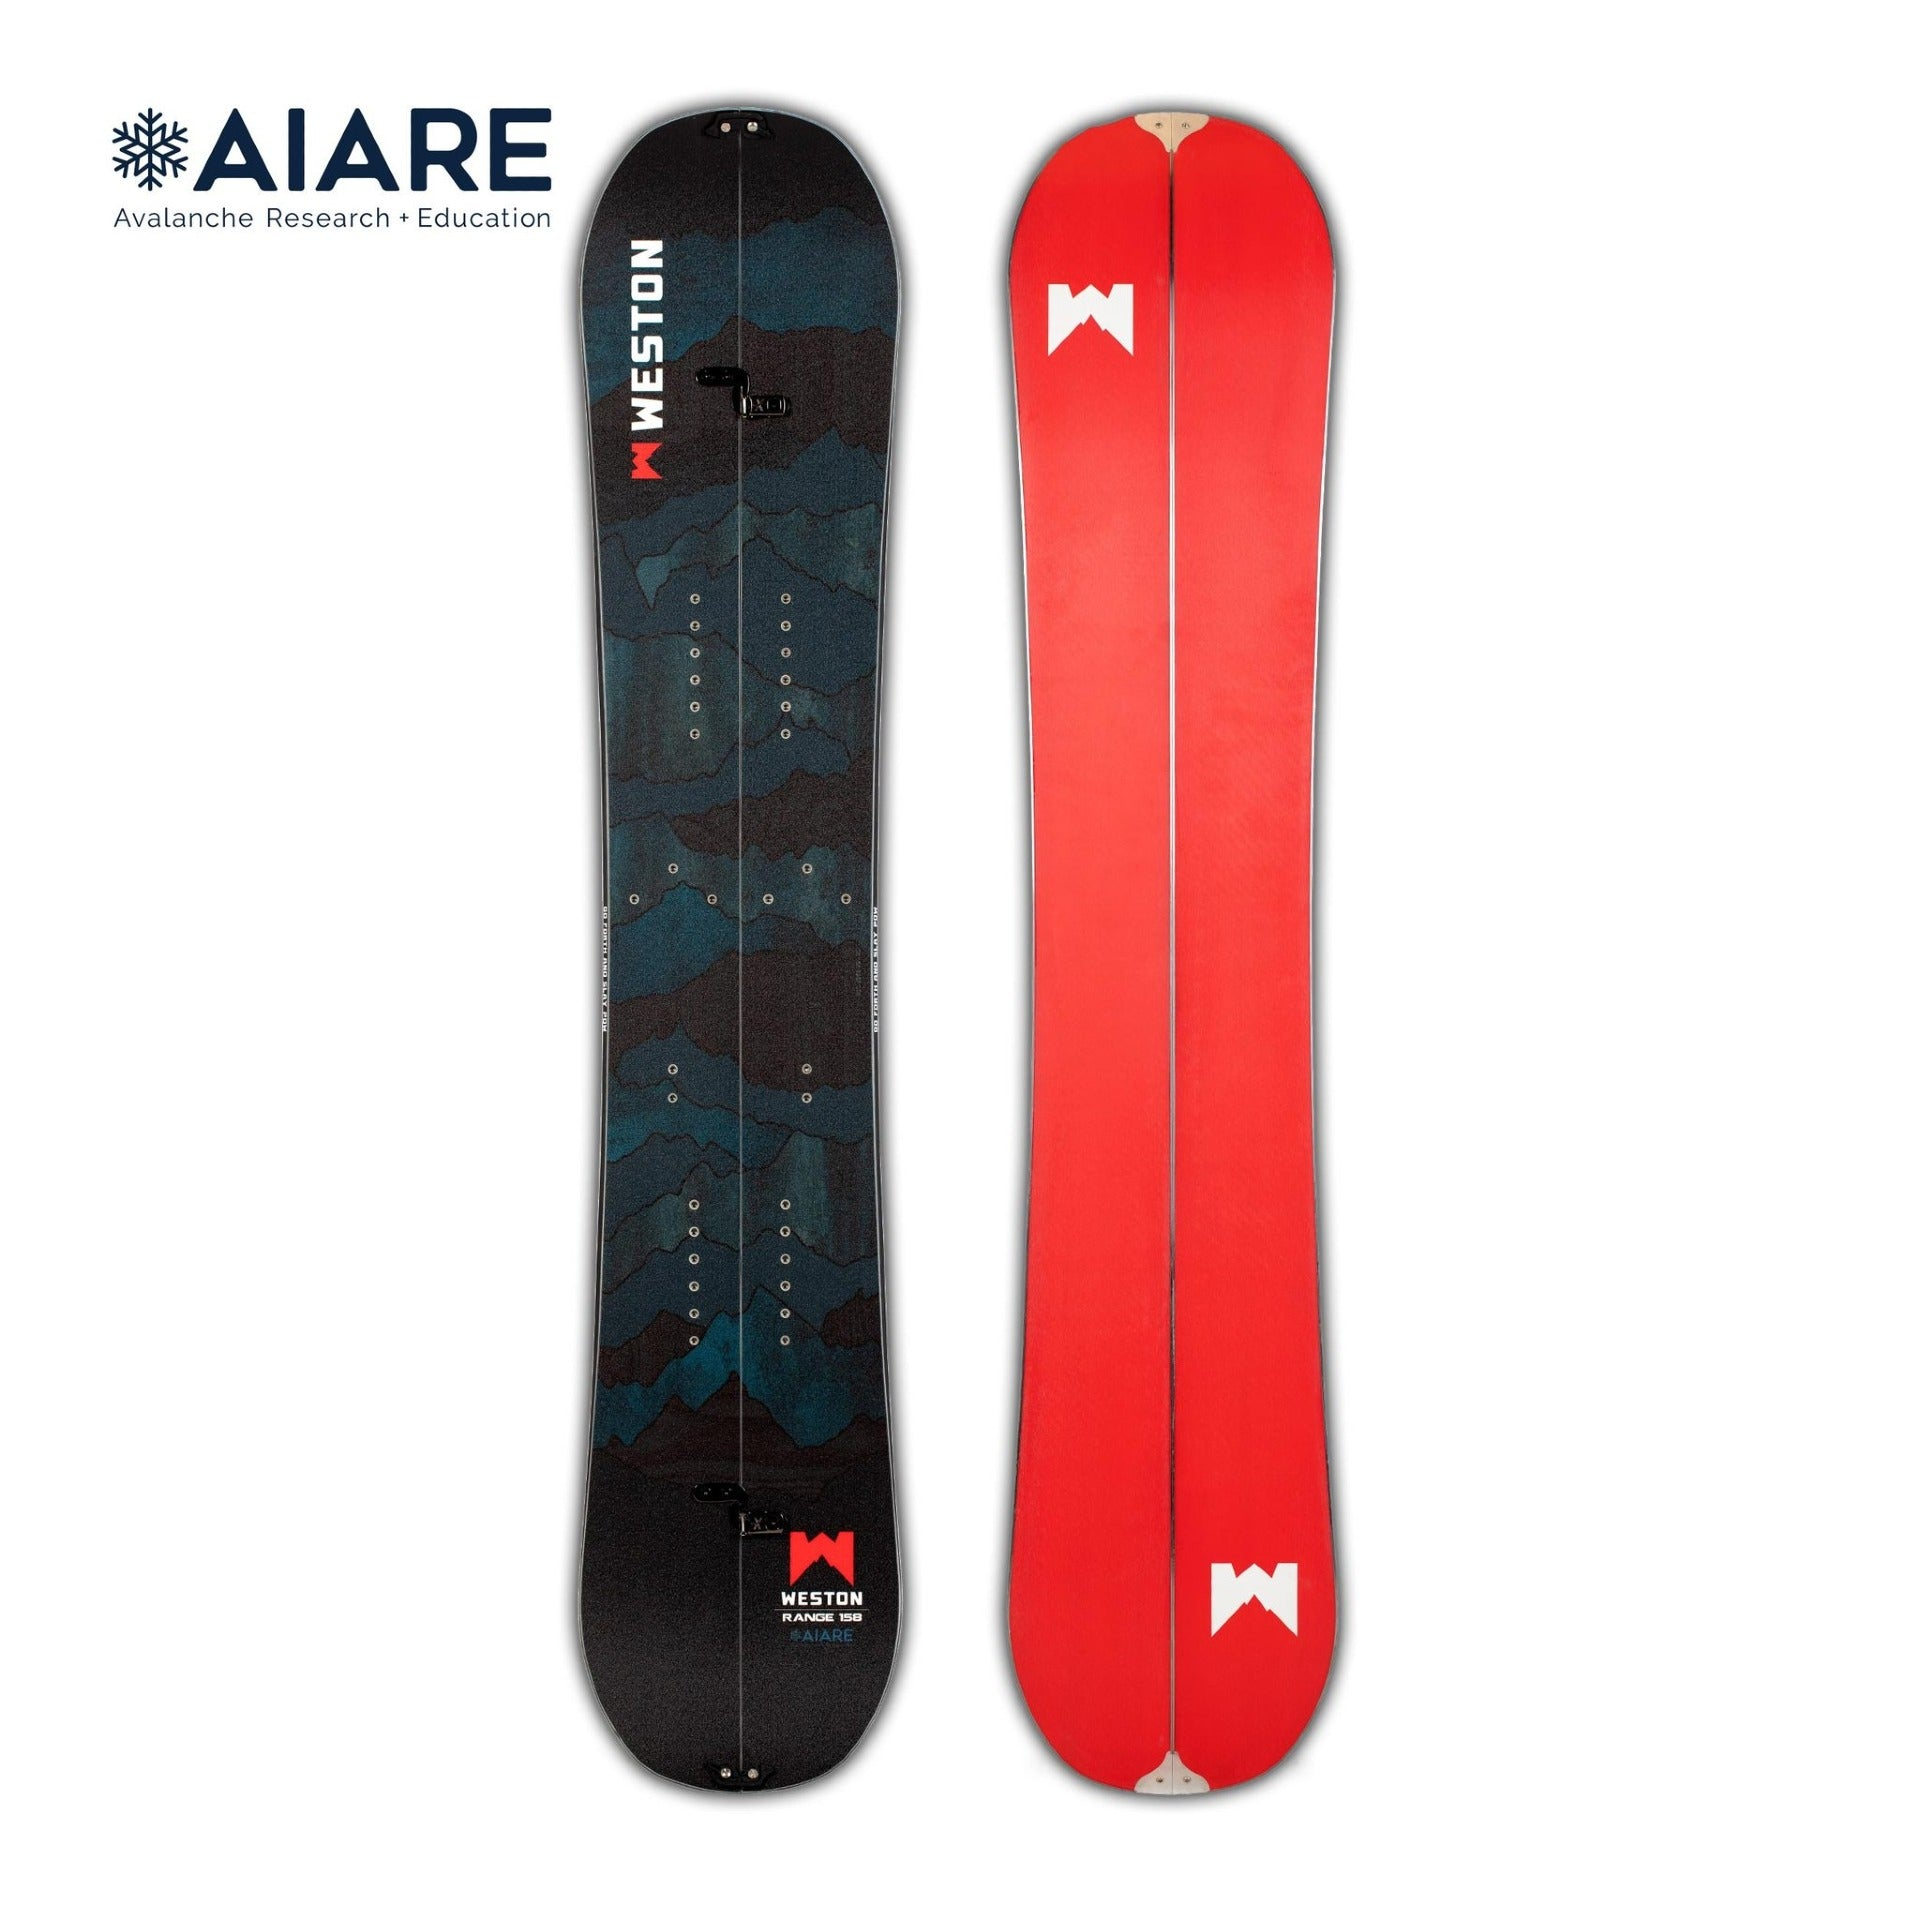 https://westonbackcountry.com/collections/splitboards/products/range-splitboard-20-21